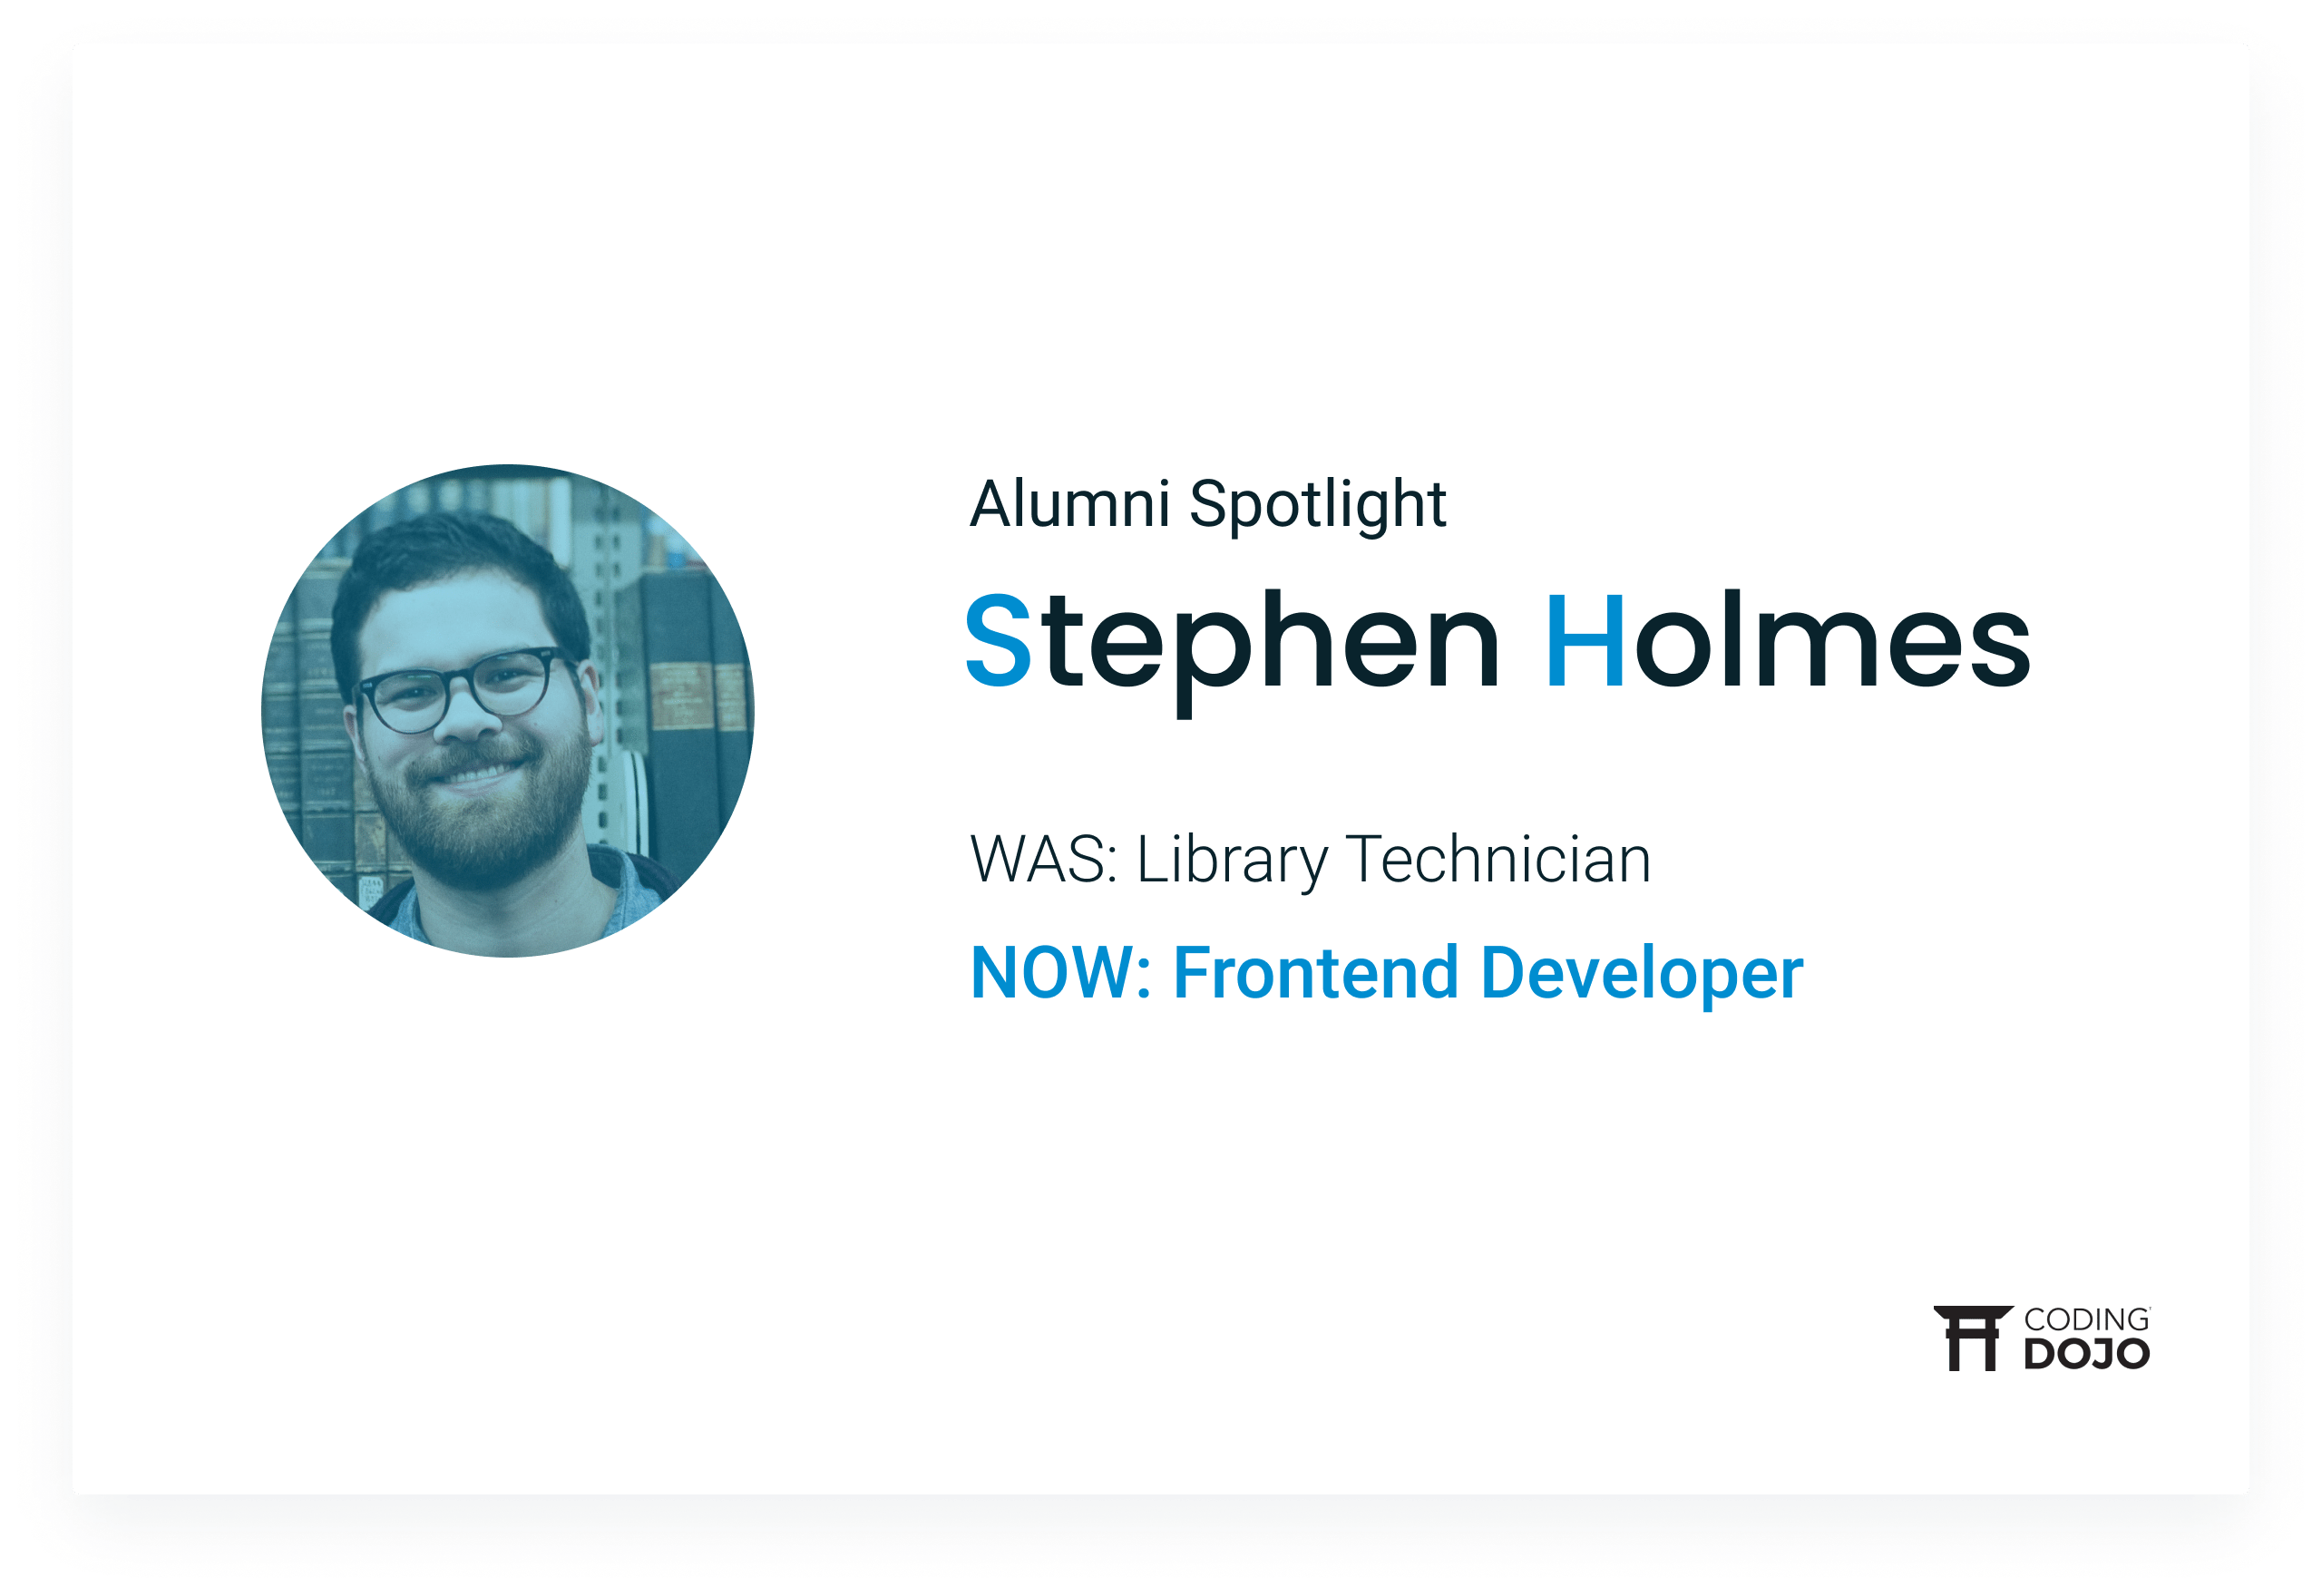 From Dewey Decimal to Developer | How Seattle Alumni Stephen Holmes Changed His Career